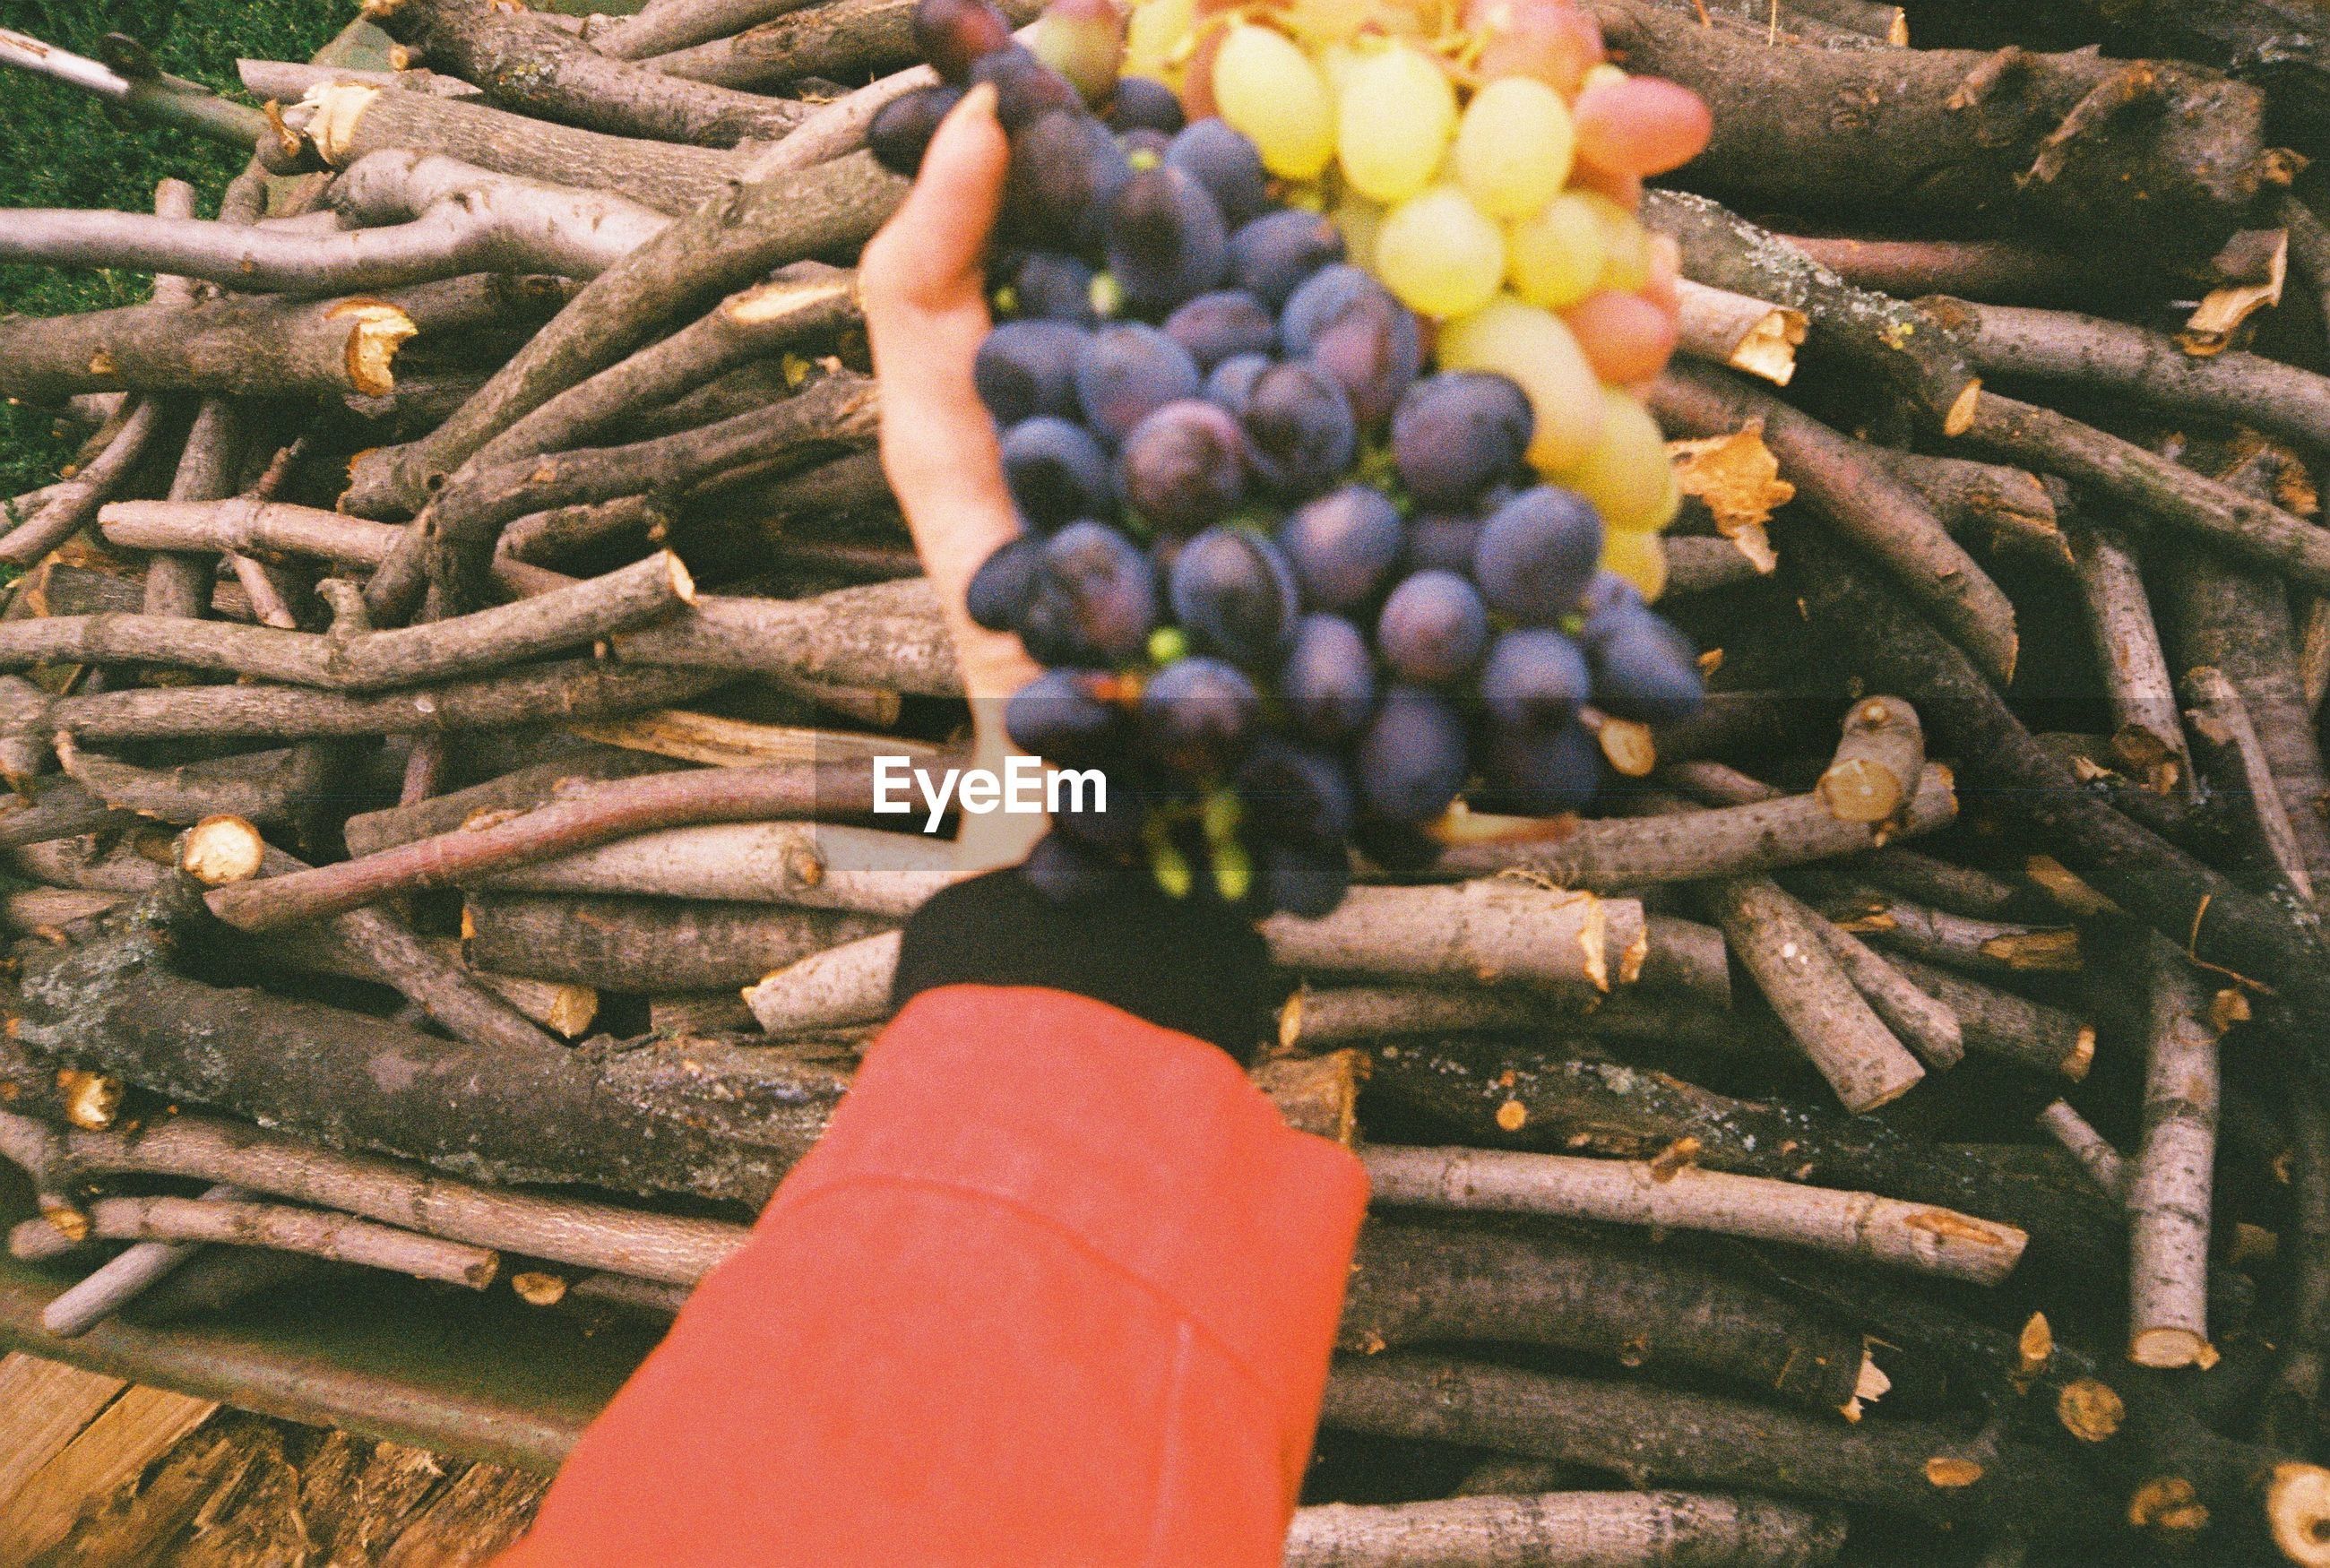 HIGH ANGLE VIEW OF HAND BERRIES ON MARKET